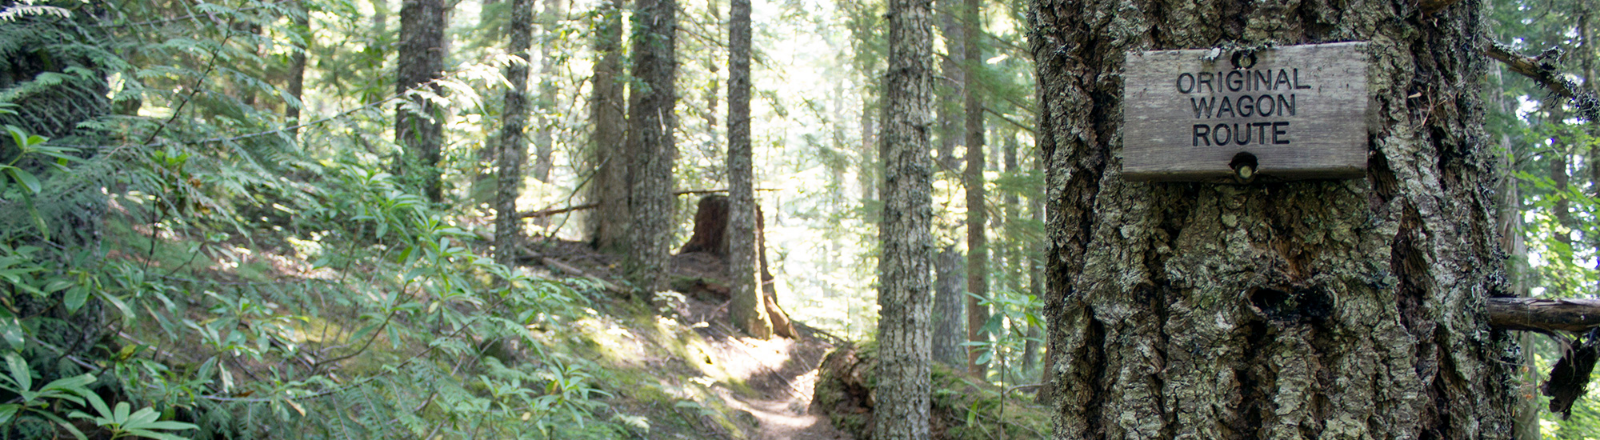 Old growth forest path on Barlow Road with small sign on tree noting original wagon route